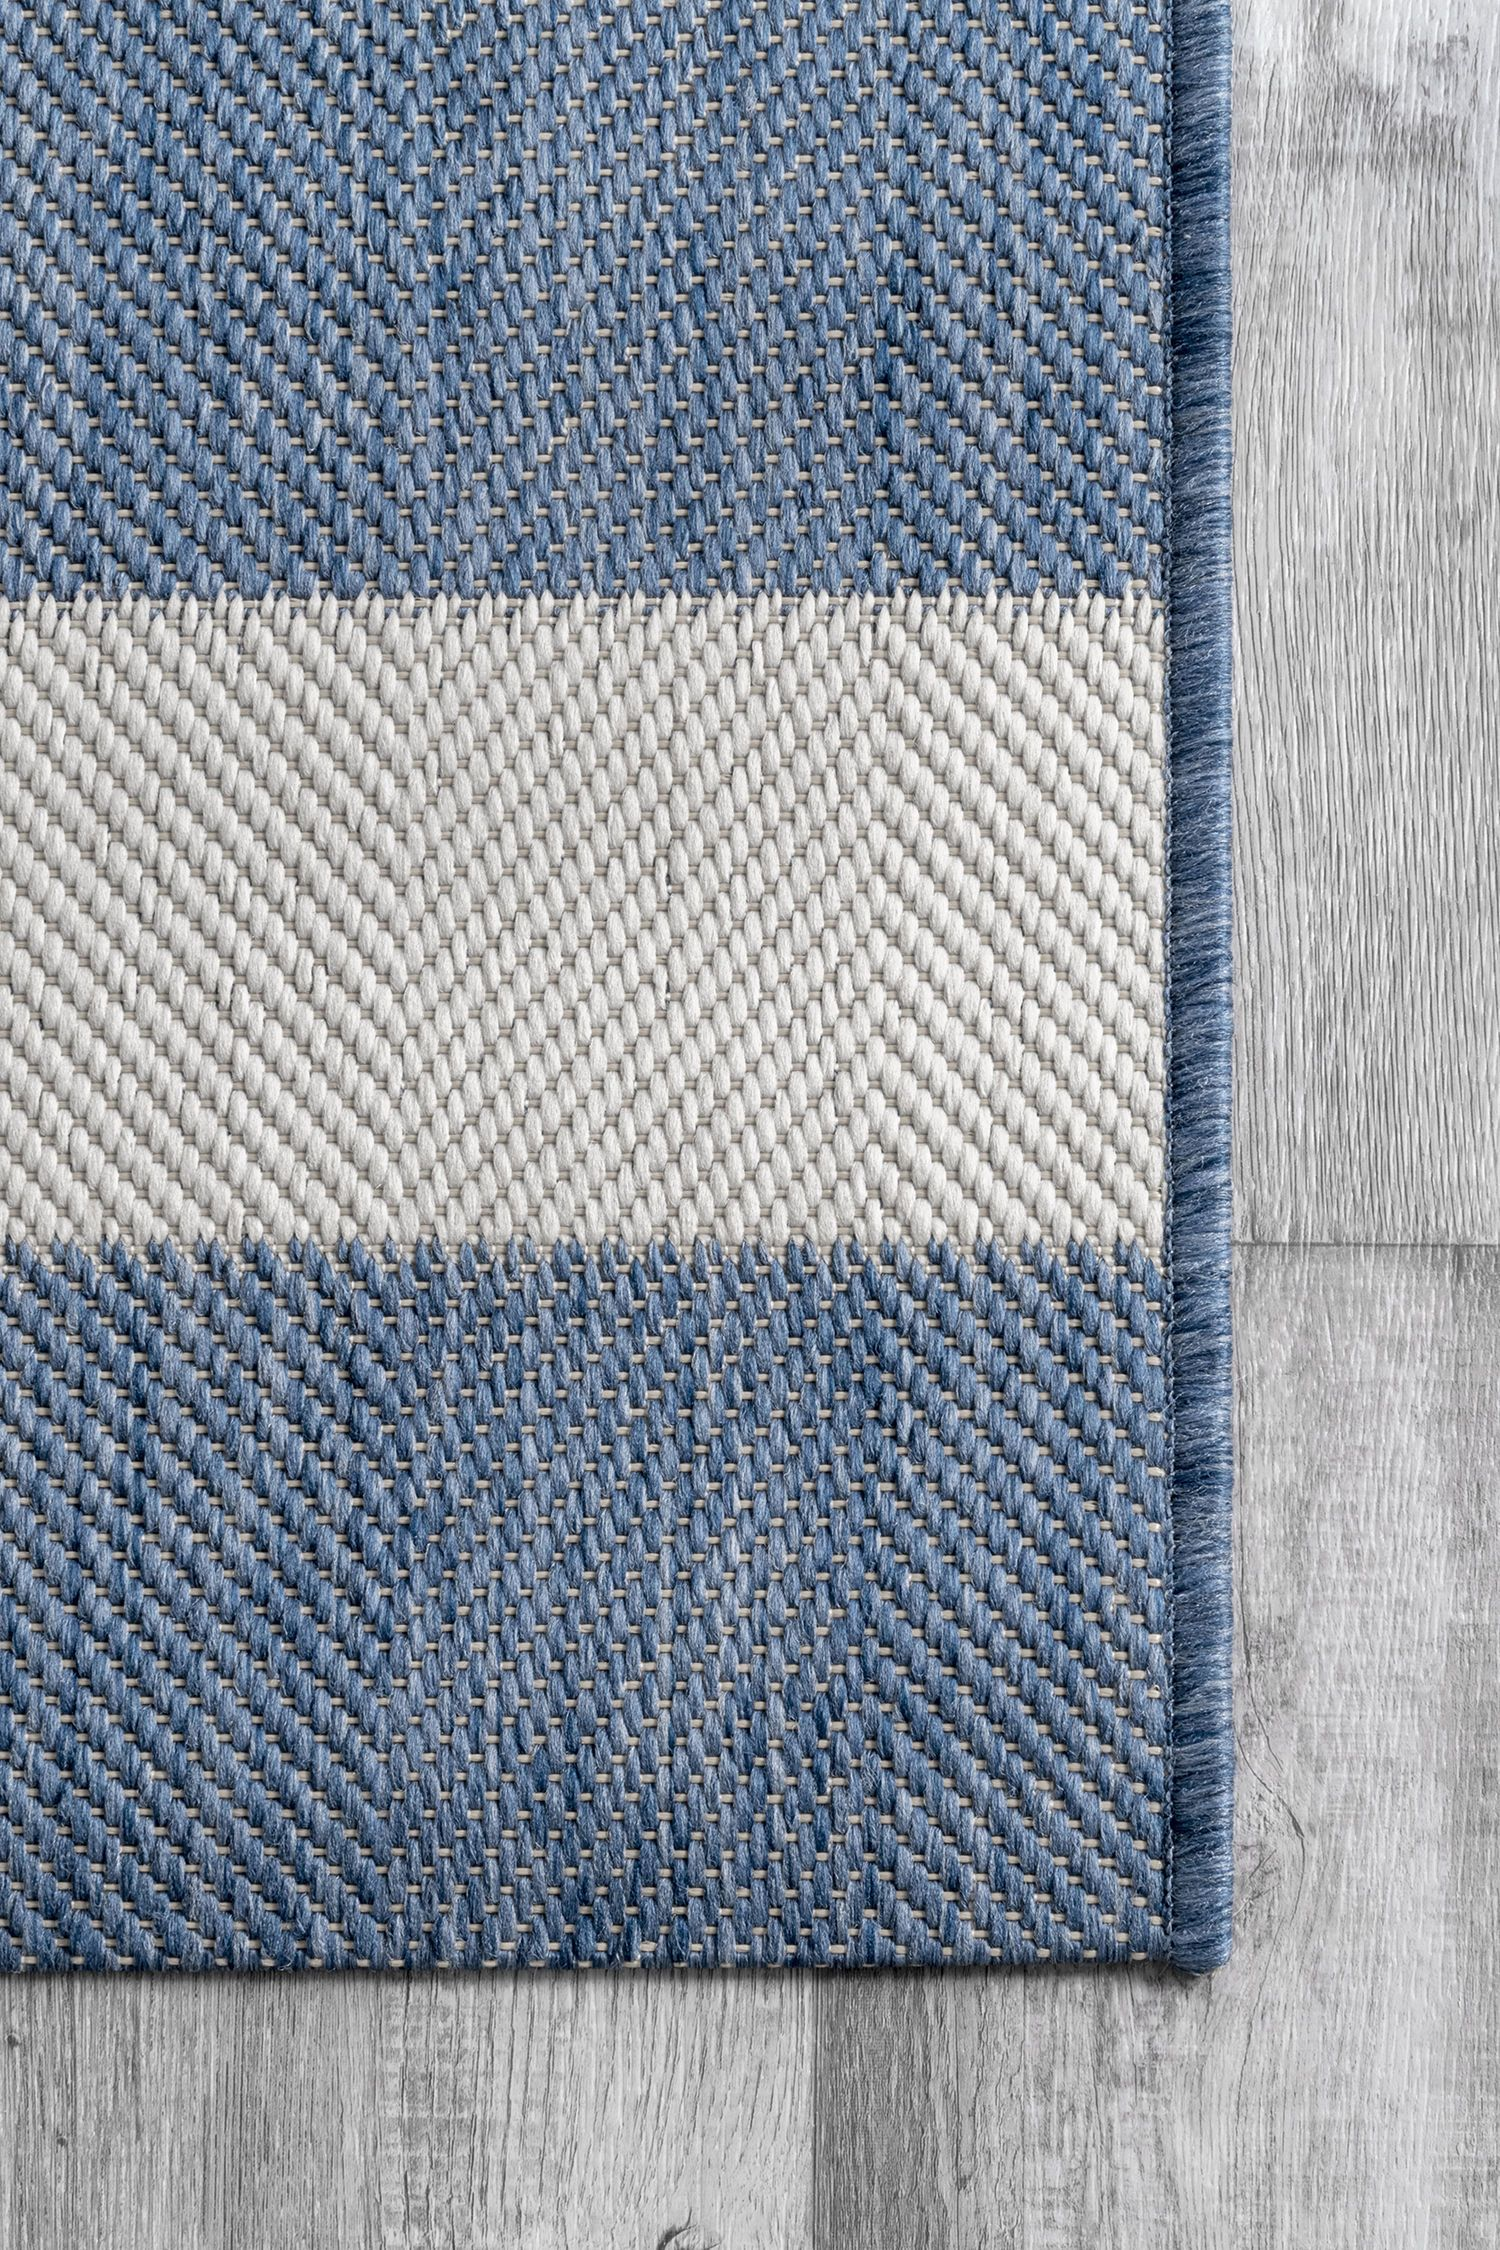 Outdoor Alexis Rug Color Blue Size 6 3 X 9 2 Rugs